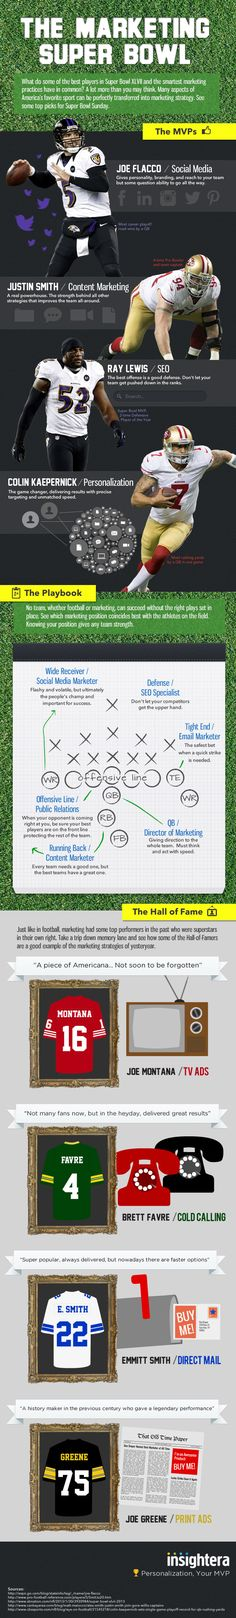 The Marketing Super Bowl: From Playbook to Hall of Fame